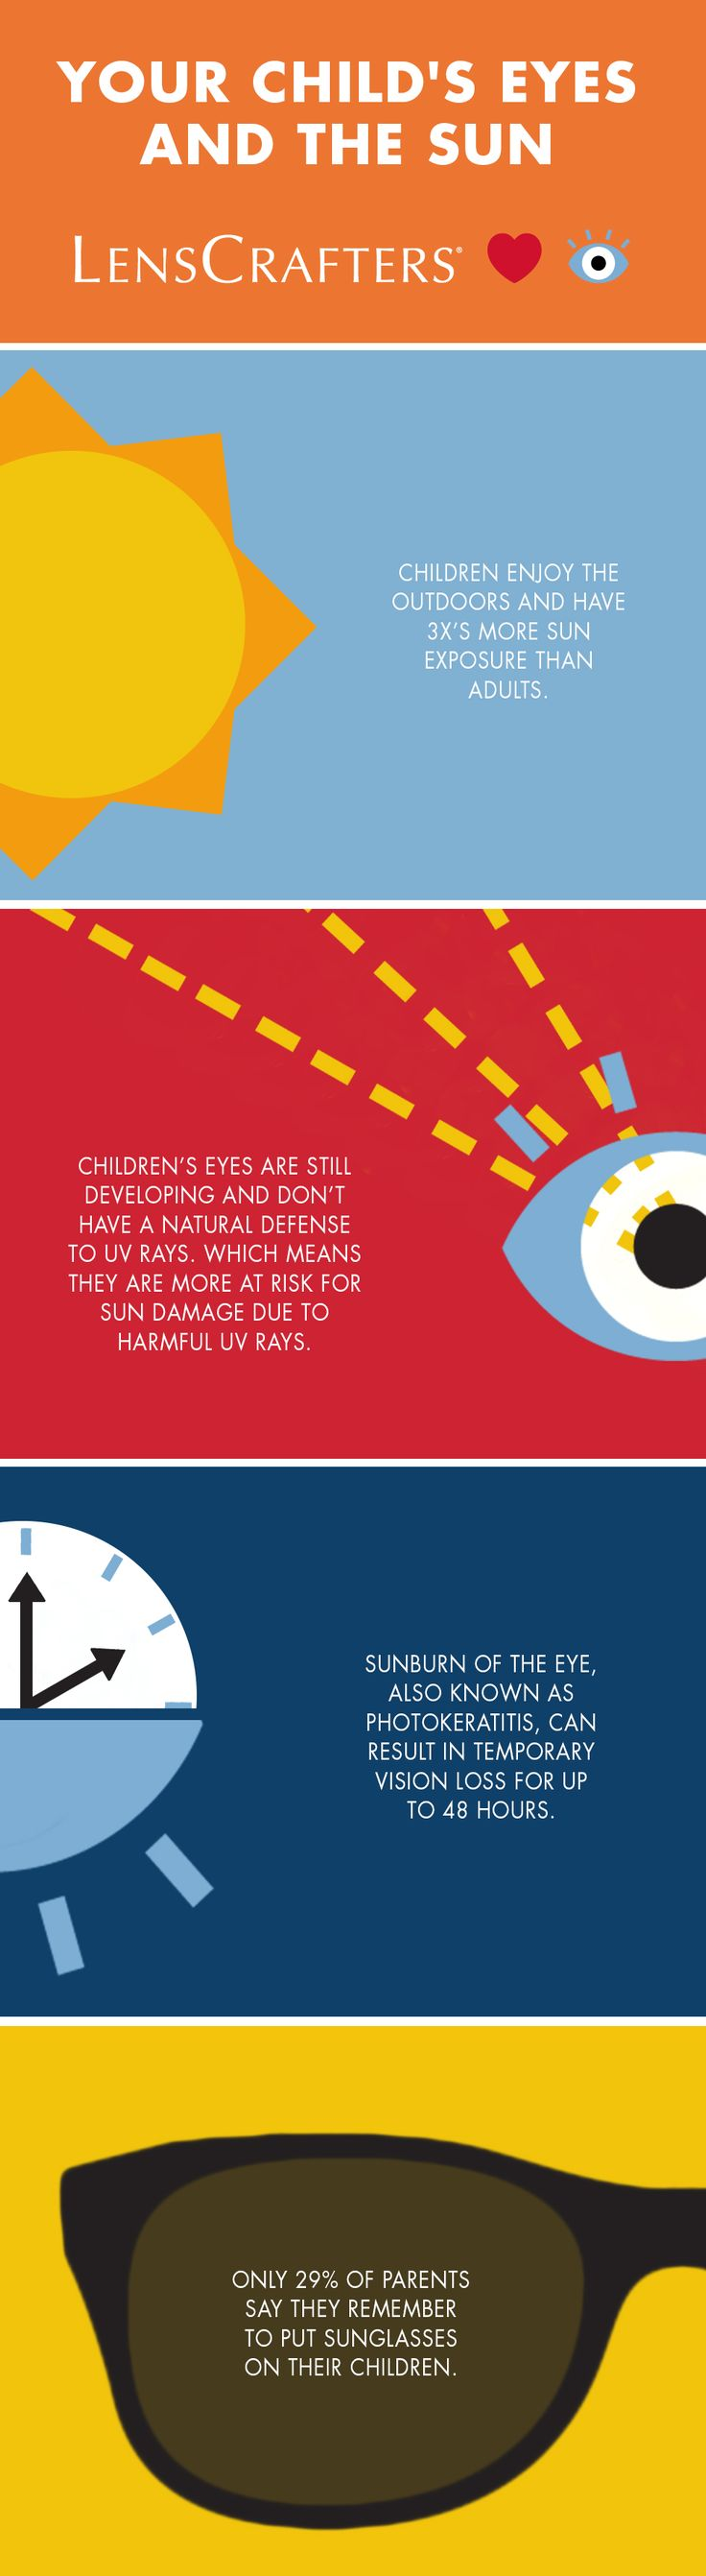 Summer means more time outdoors and more sun exposure, opening up more chances for eye damage from unfiltered UV rays. Make sure your child's eyes are protected with a pair of sunglasses this summer.